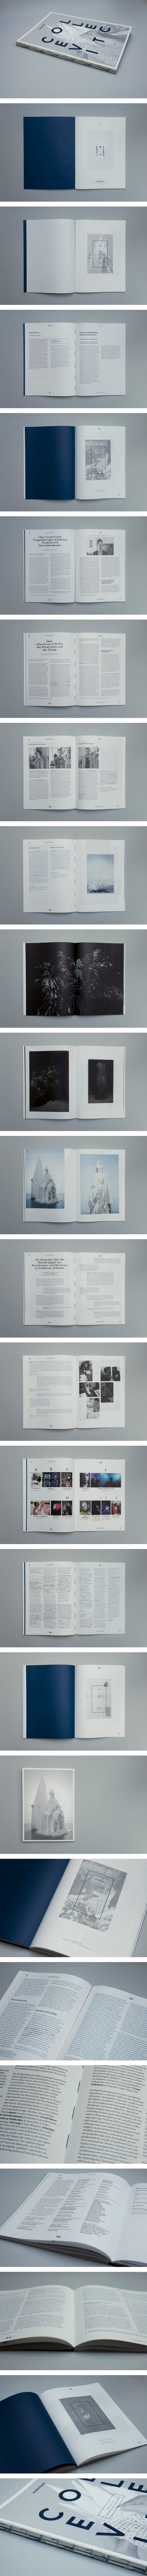 SOUND:FRAME 2013 Catalog by Maximilian Huber